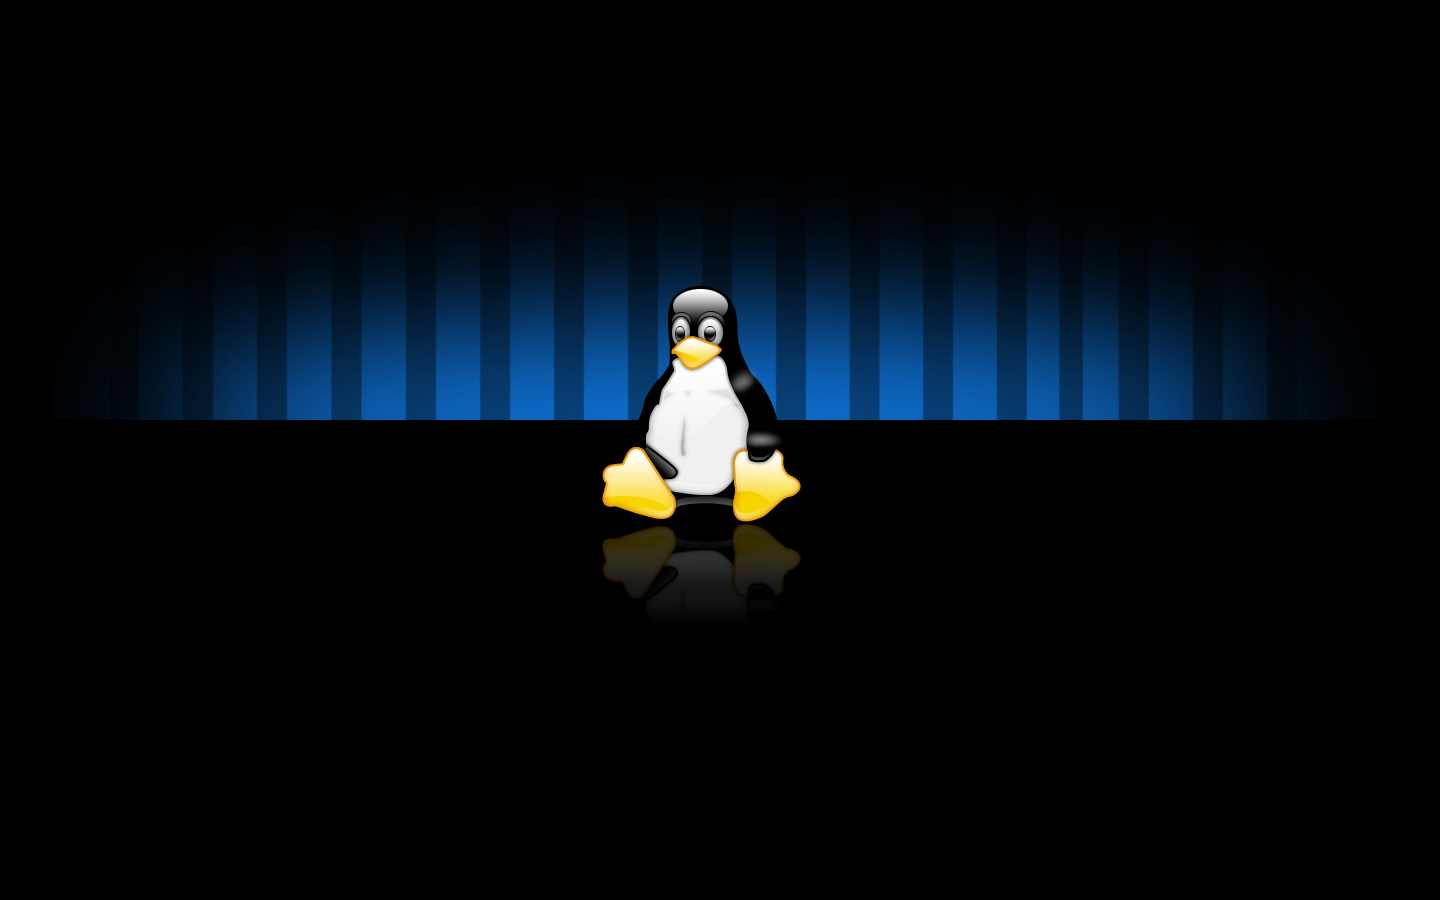 Linux Wallpapers   Linux Stickers and T Shirts 1440x900